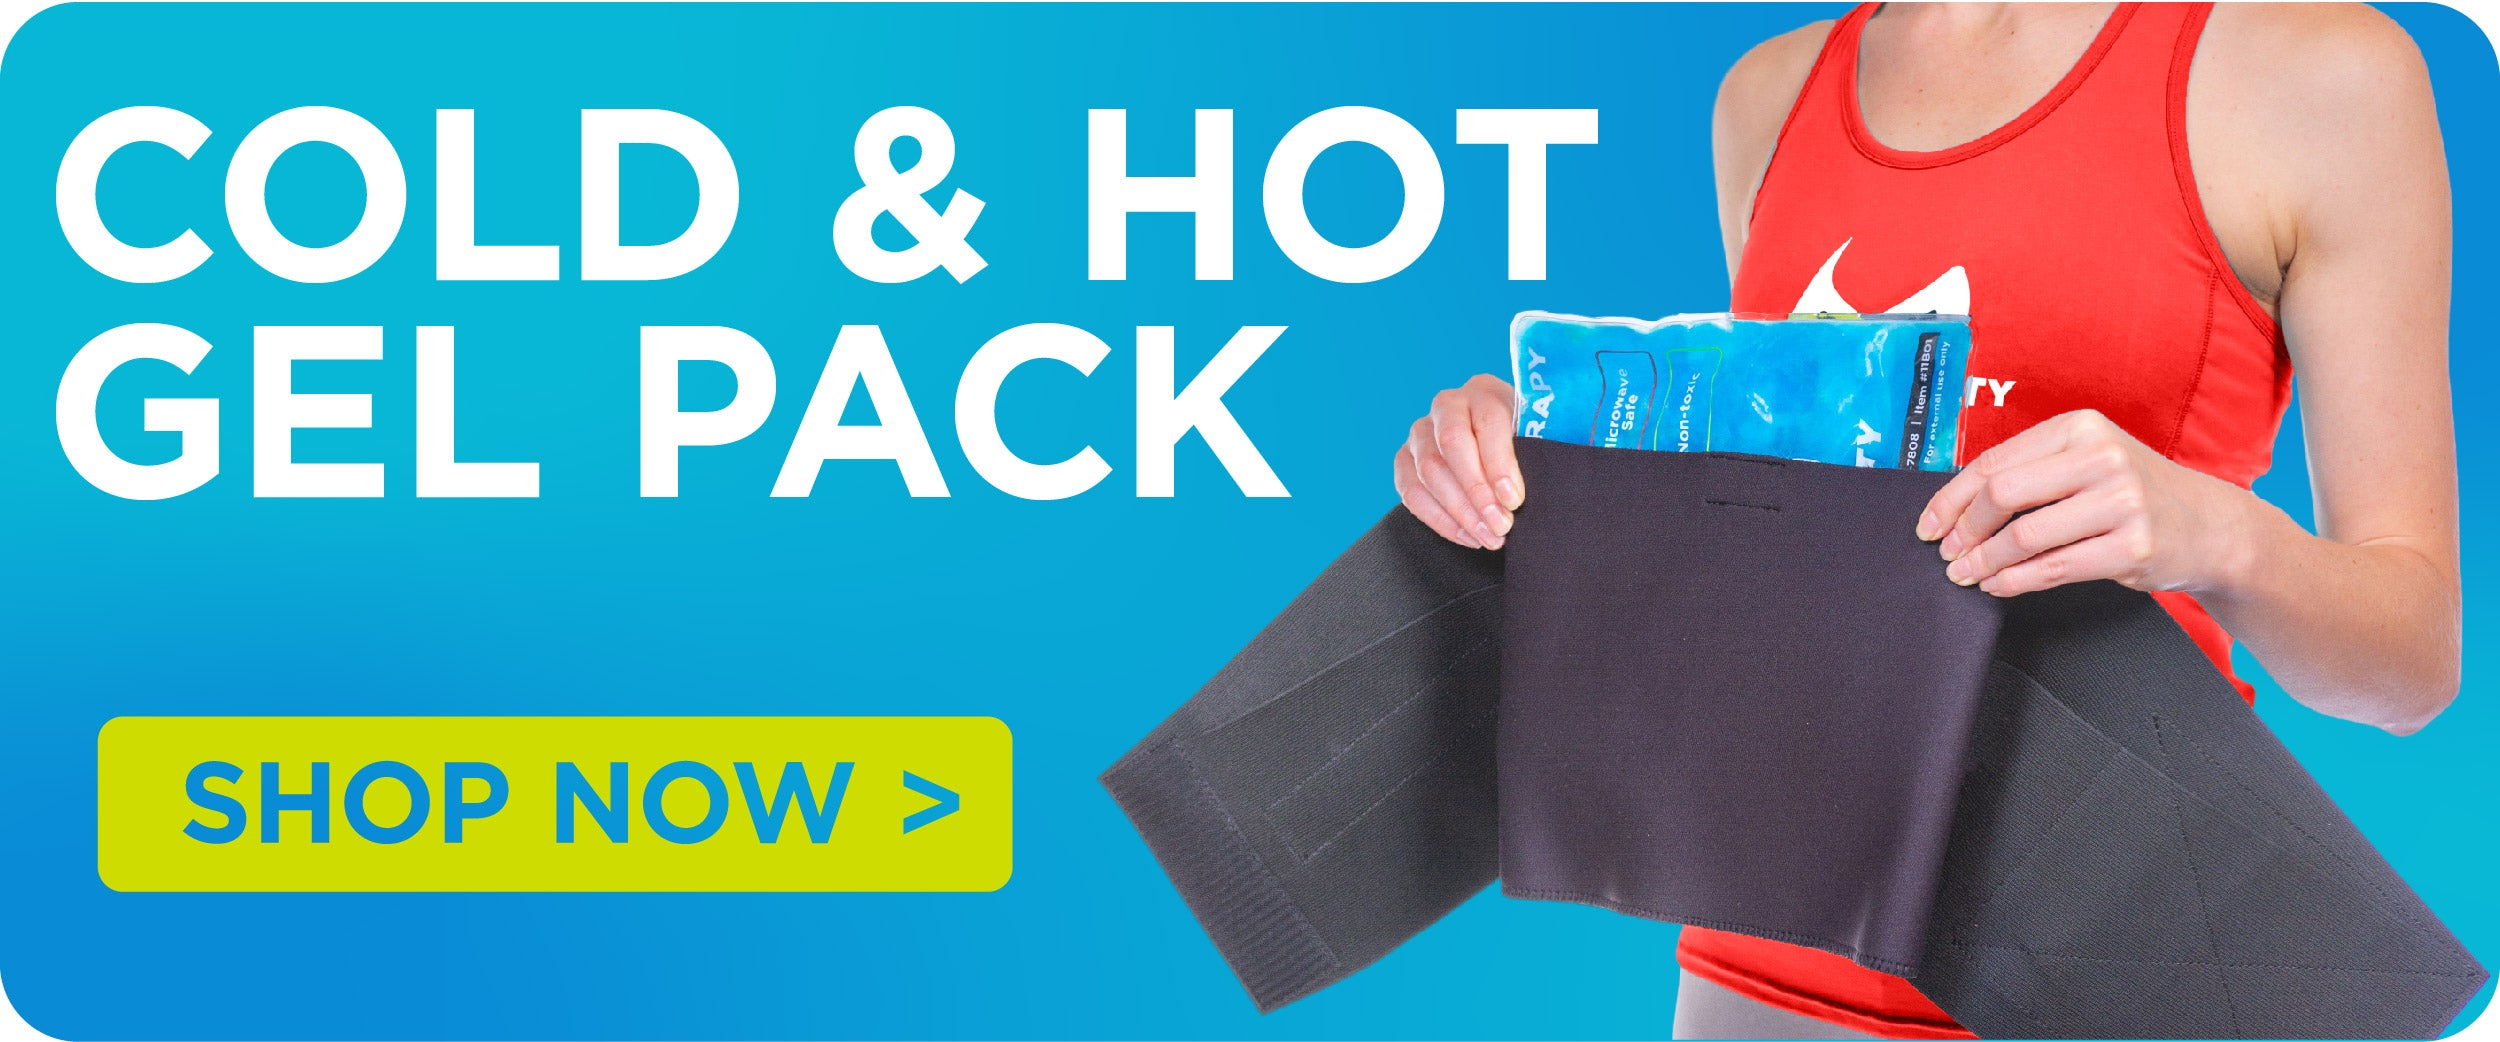 purchase a cold and got gel pack for your lower back brace